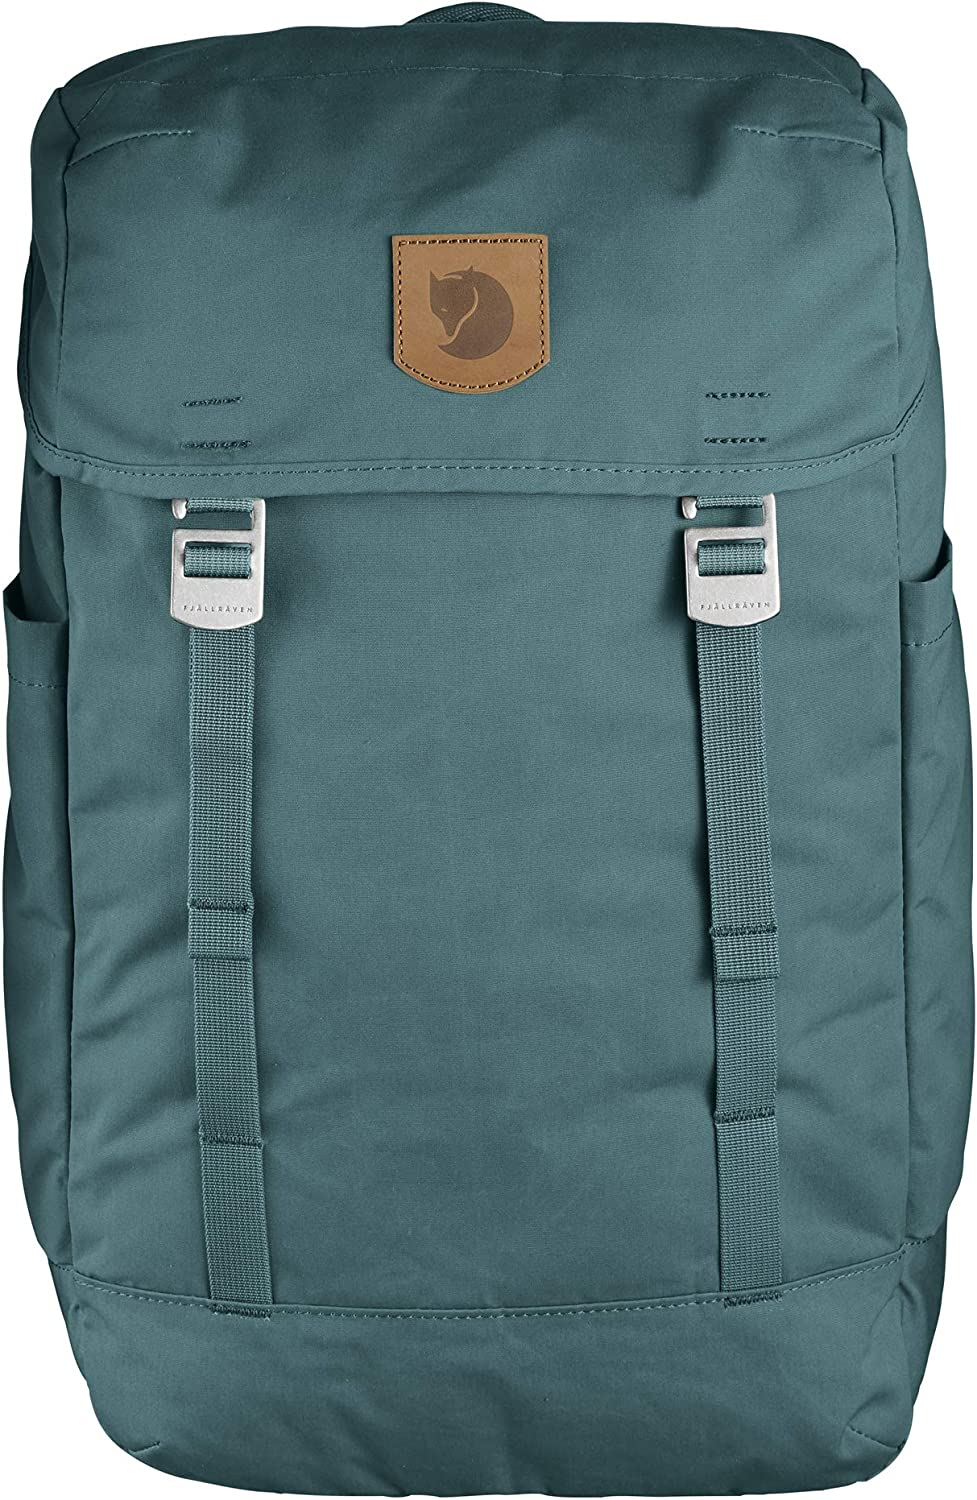 FJ LLR VEN Unisex-Adult Luggage only Greenland Top